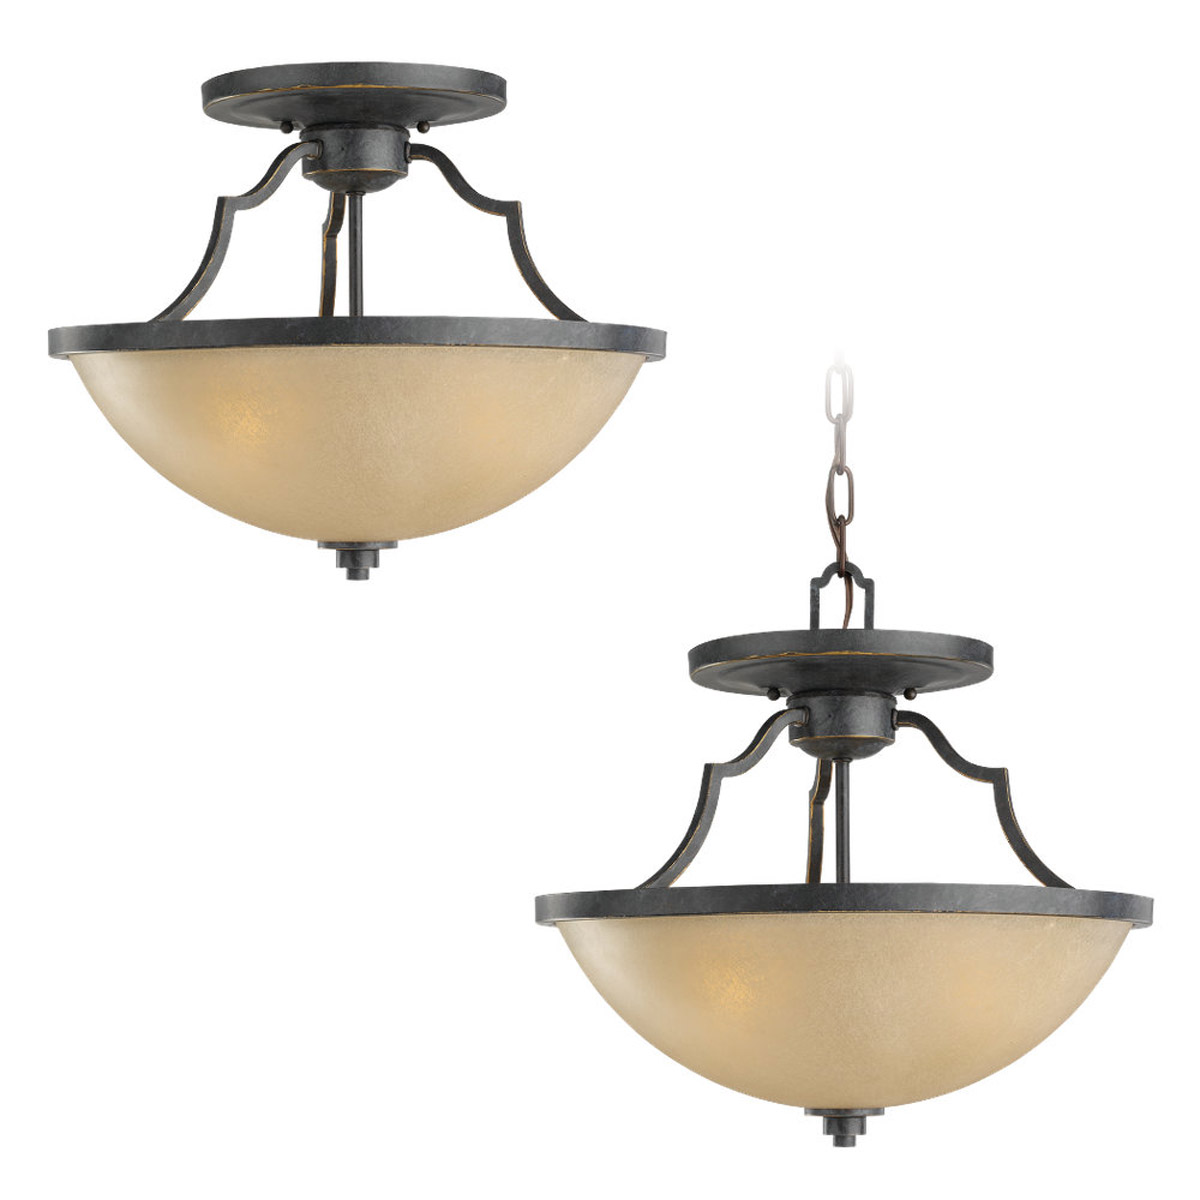 Sea Gull Lighting Roslyn 3 Light Semi-Flush Mount in Flemish Bronze 77520-845